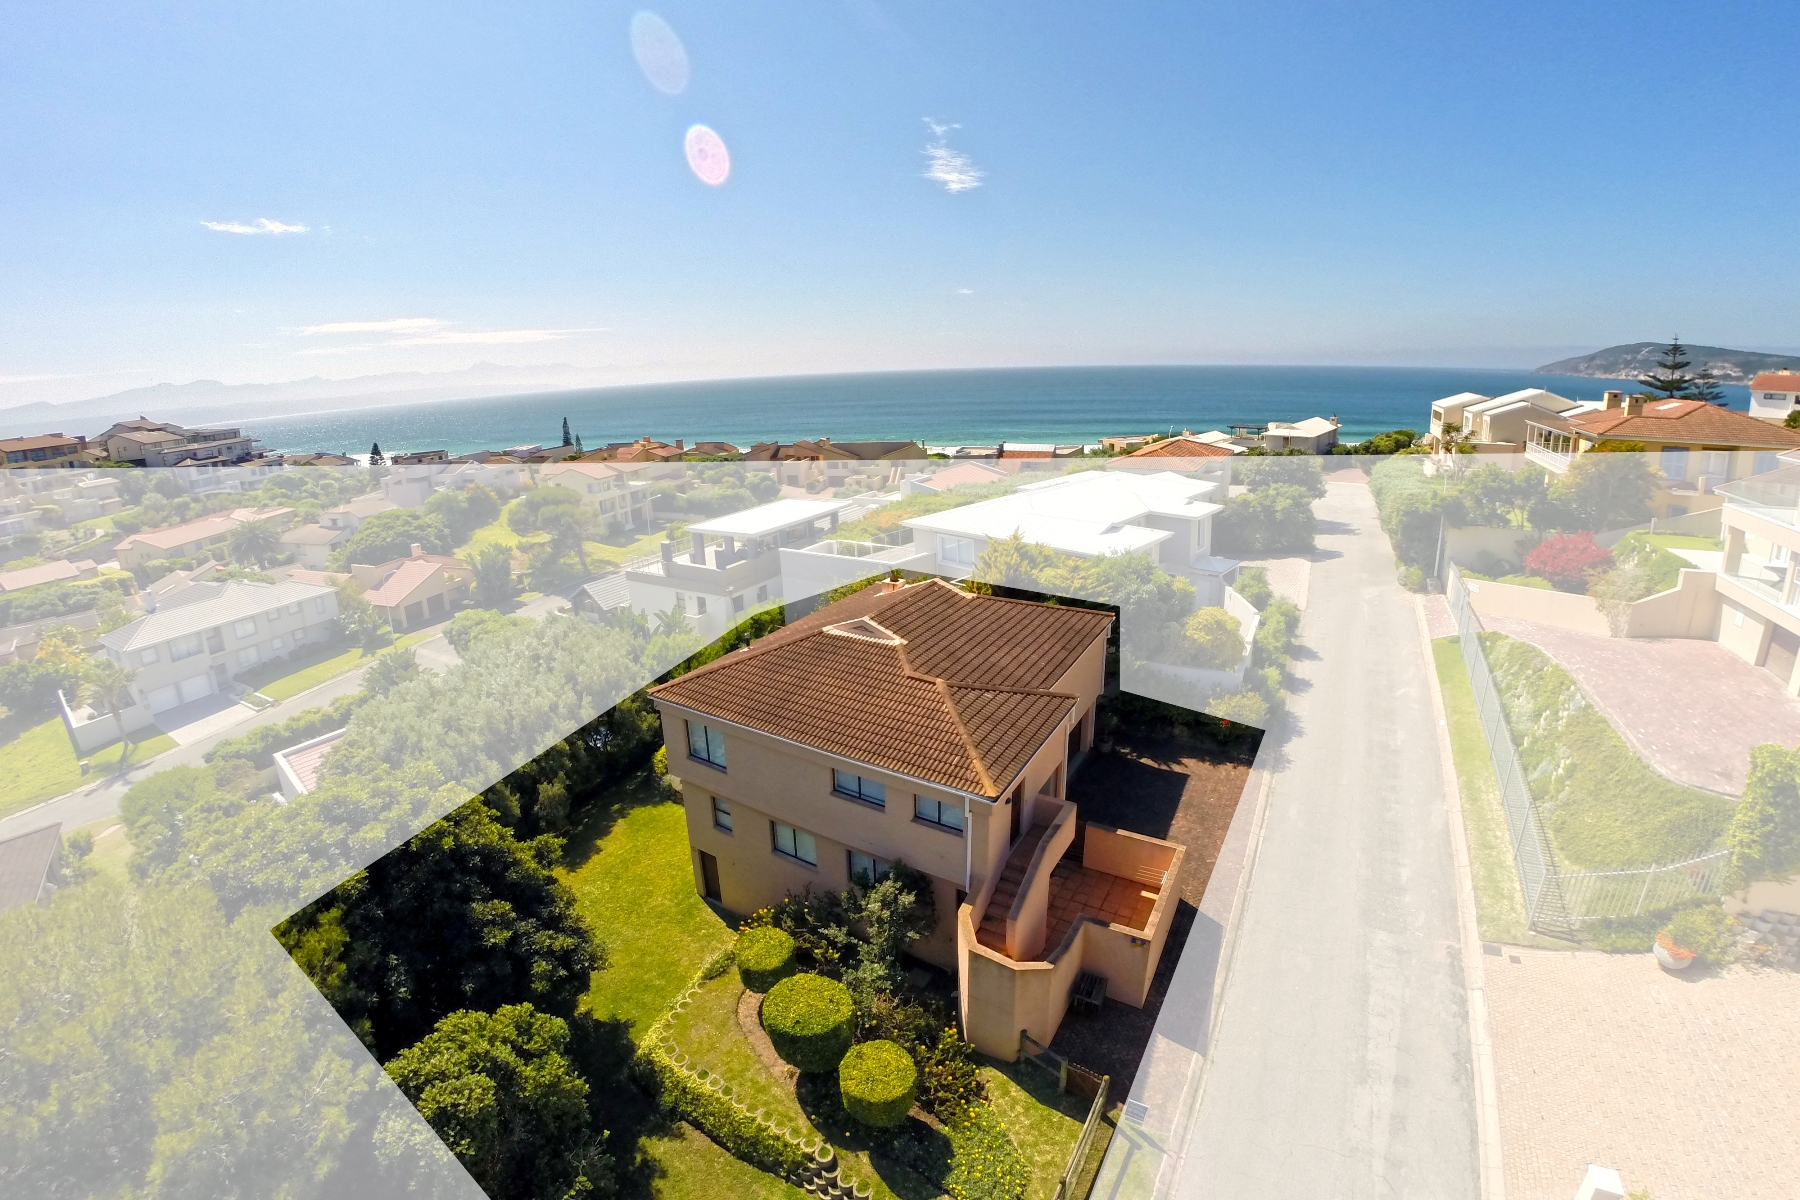 Single Family Home for Sale at Close To The Beach Plettenberg Bay, Western Cape 6600 South Africa